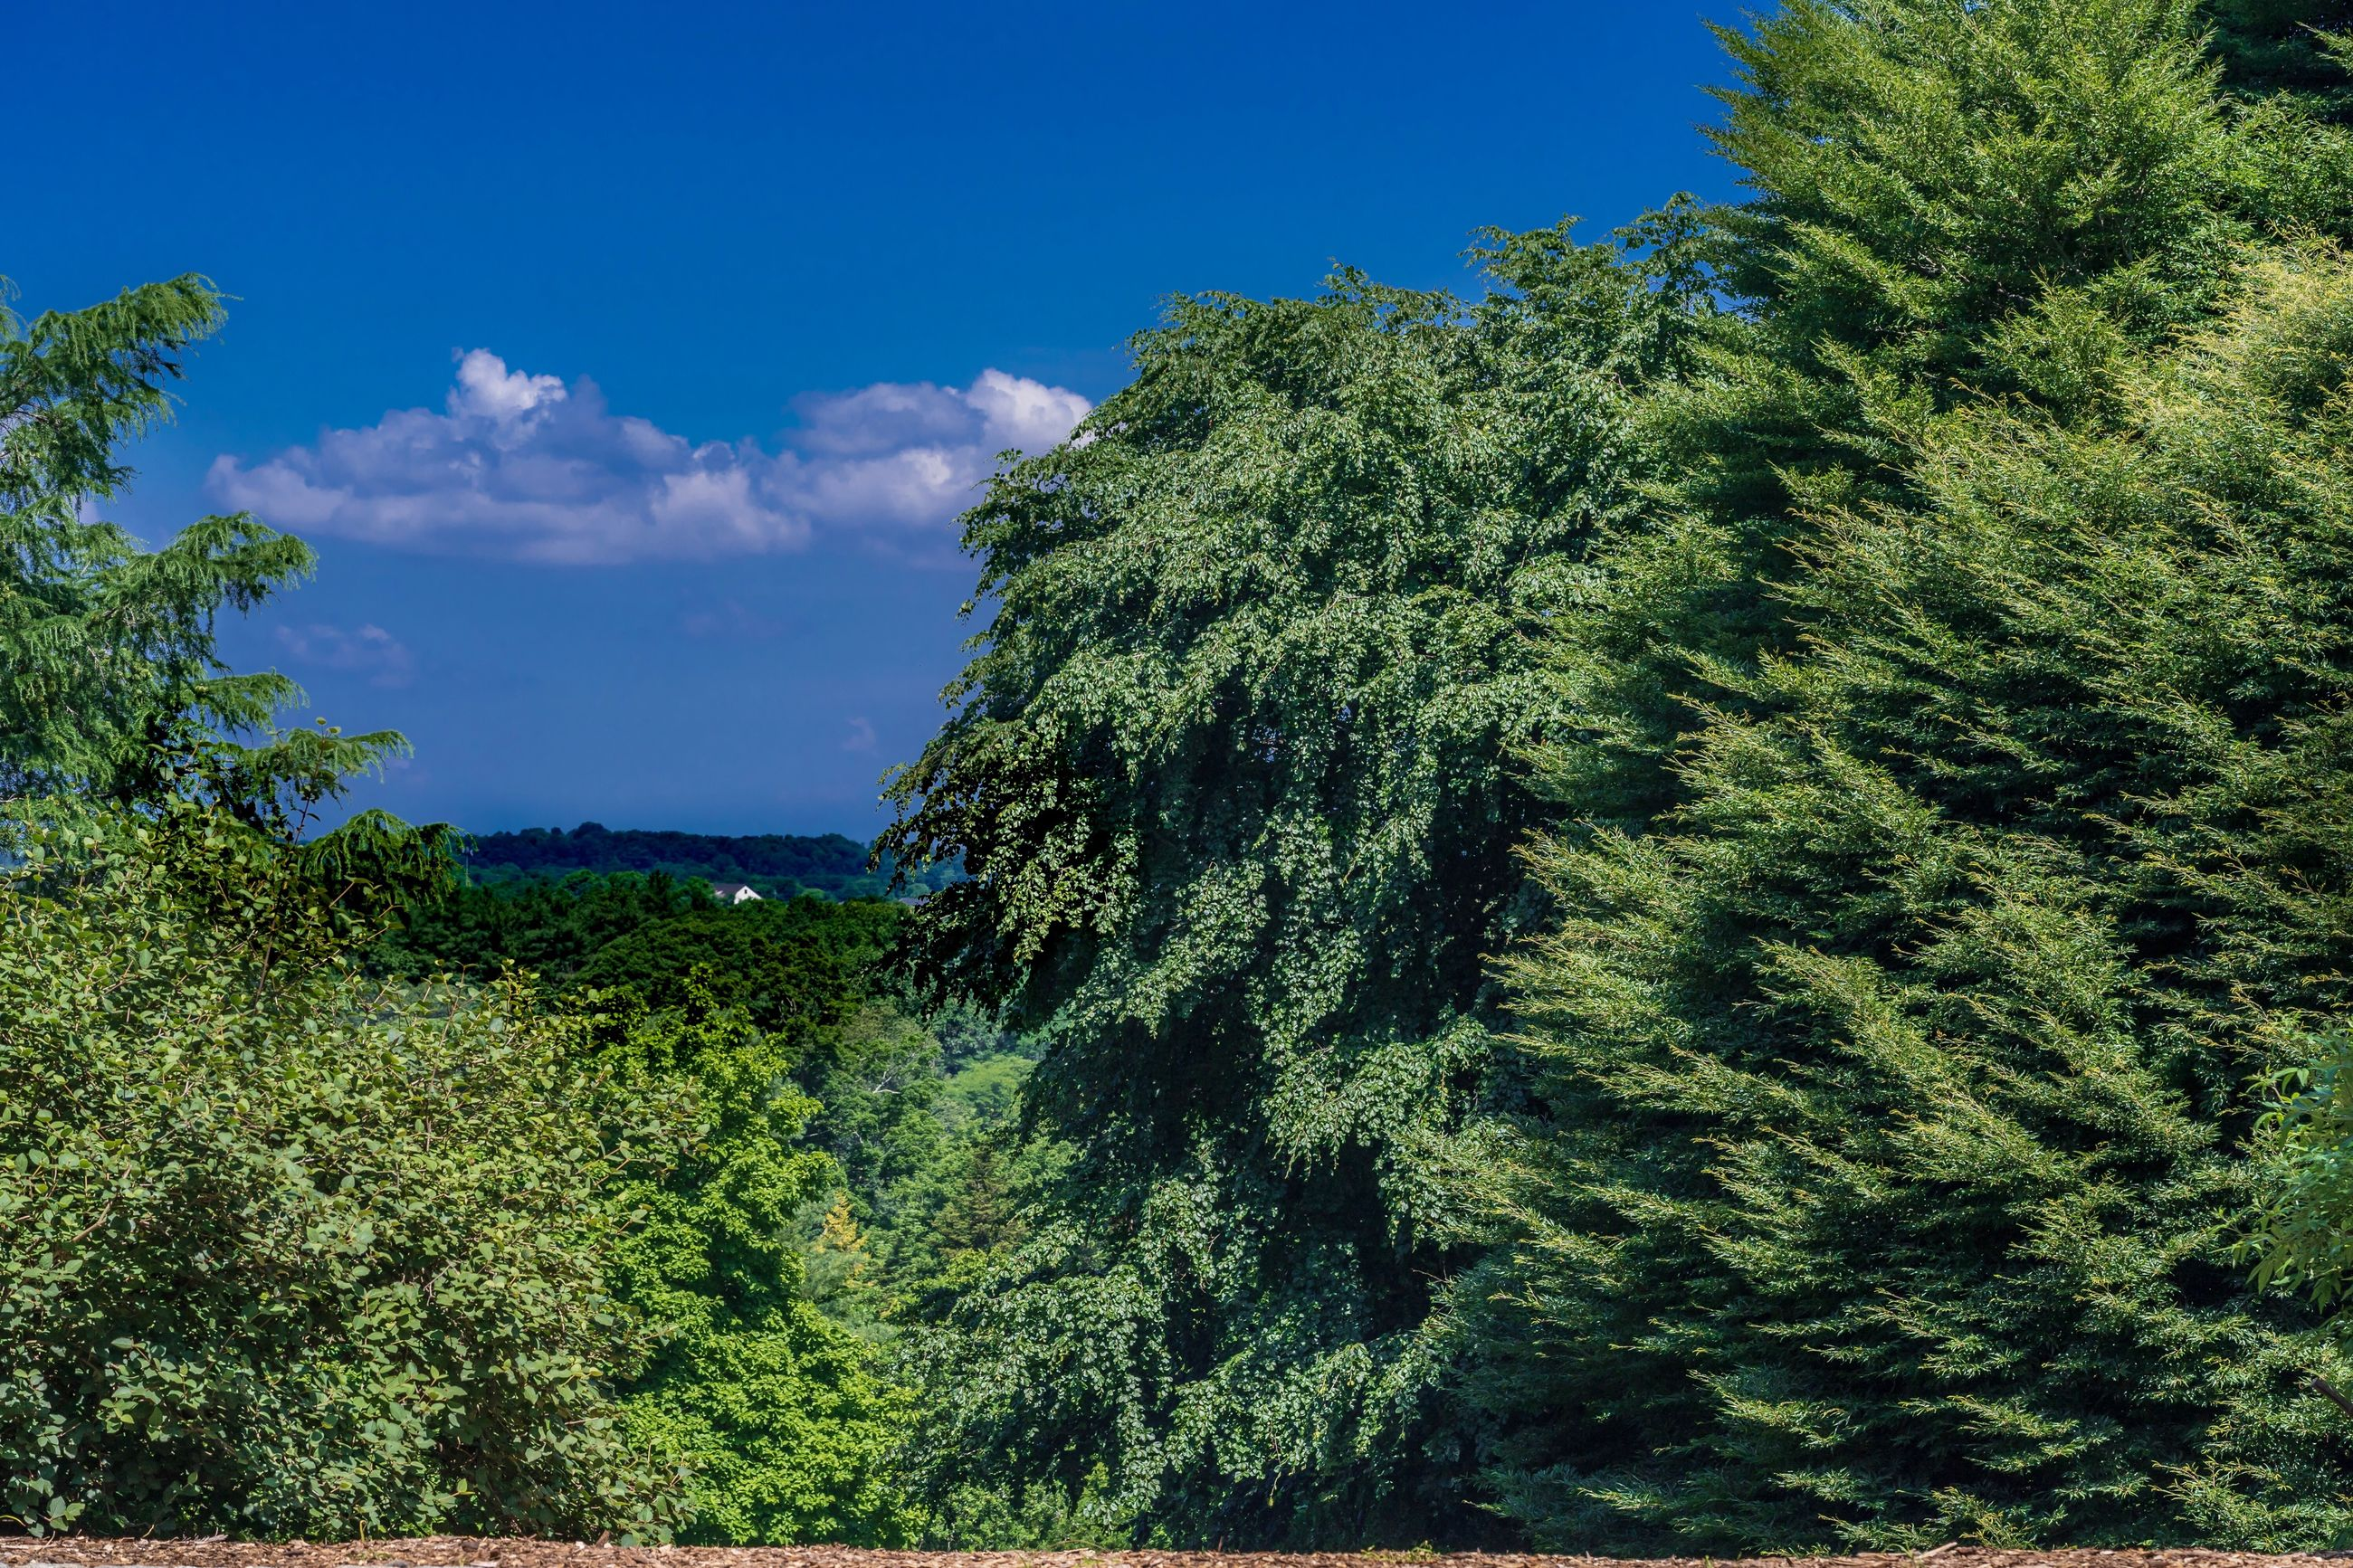 plant, tree, sky, beauty in nature, green color, tranquility, tranquil scene, growth, scenics - nature, non-urban scene, nature, blue, no people, day, cloud - sky, land, forest, outdoors, idyllic, lush foliage, coniferous tree